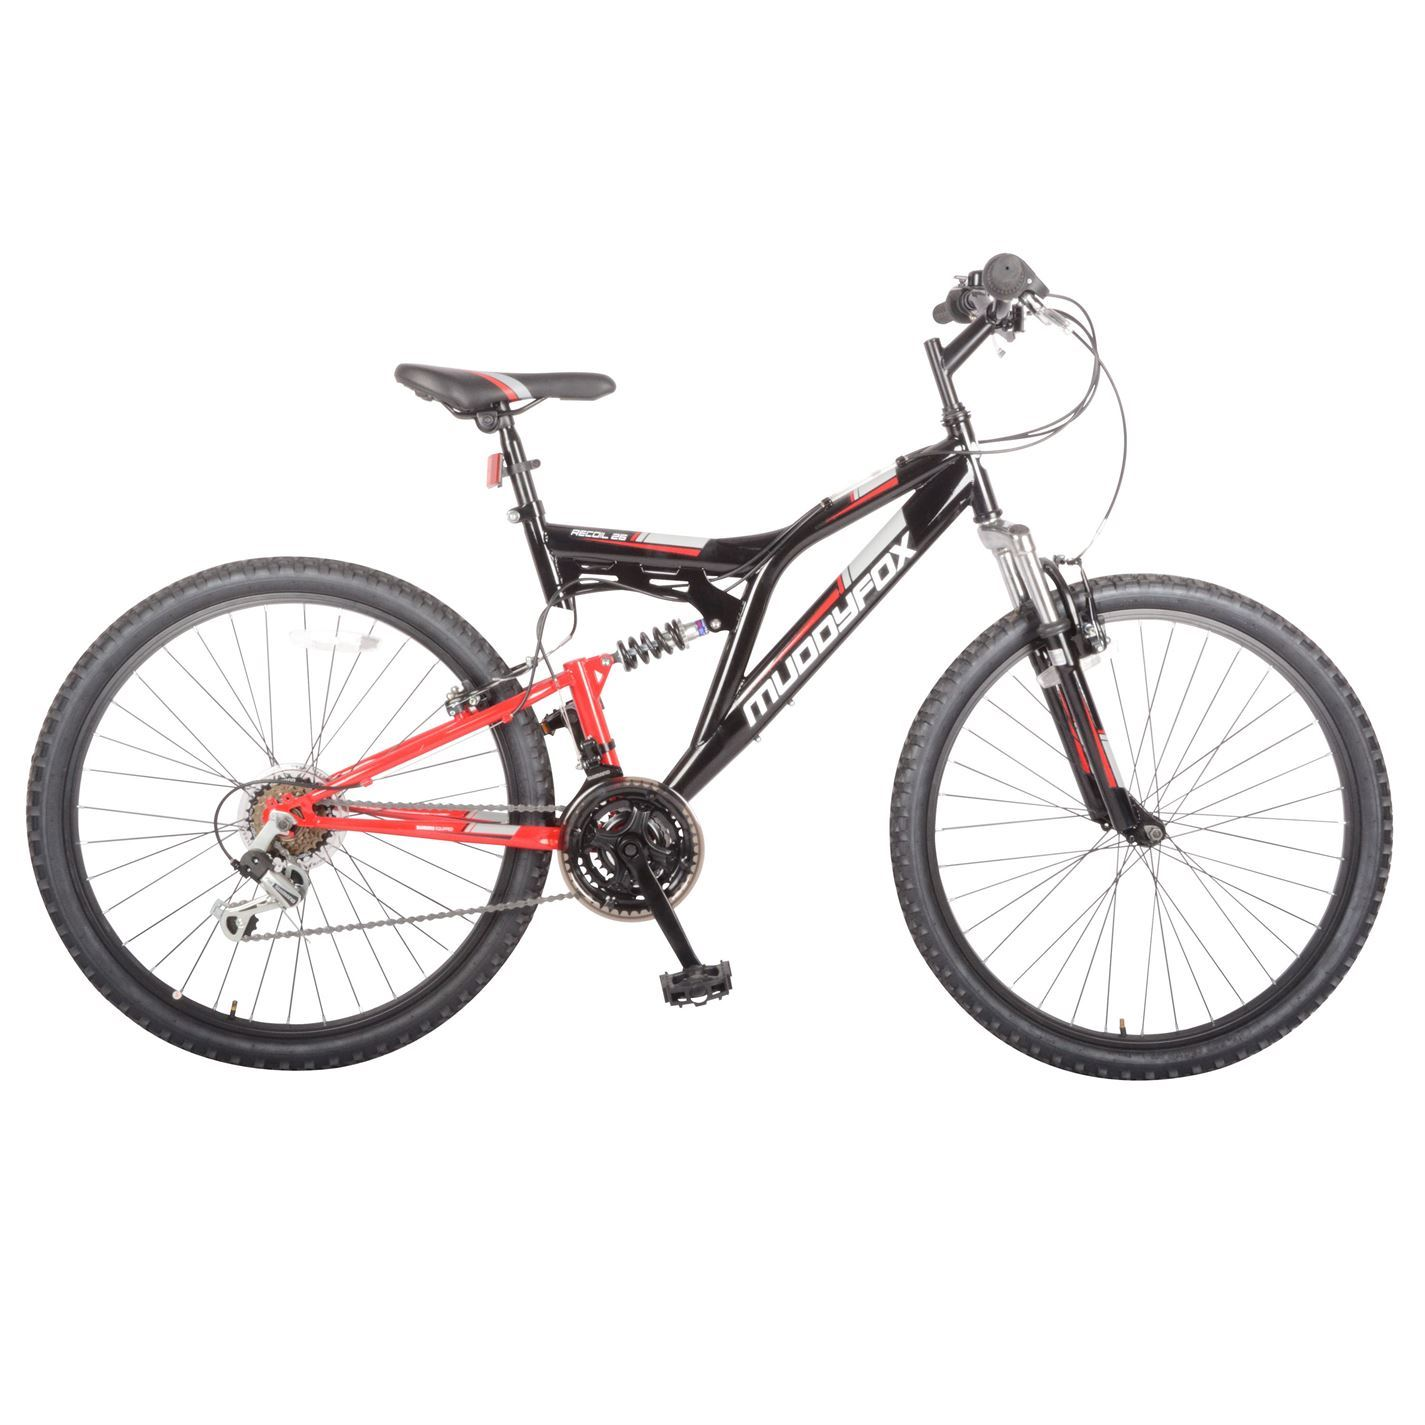 Muddyfox Mens Recoil26 Mountain Bike Dual Suspension Cycling Bicycle